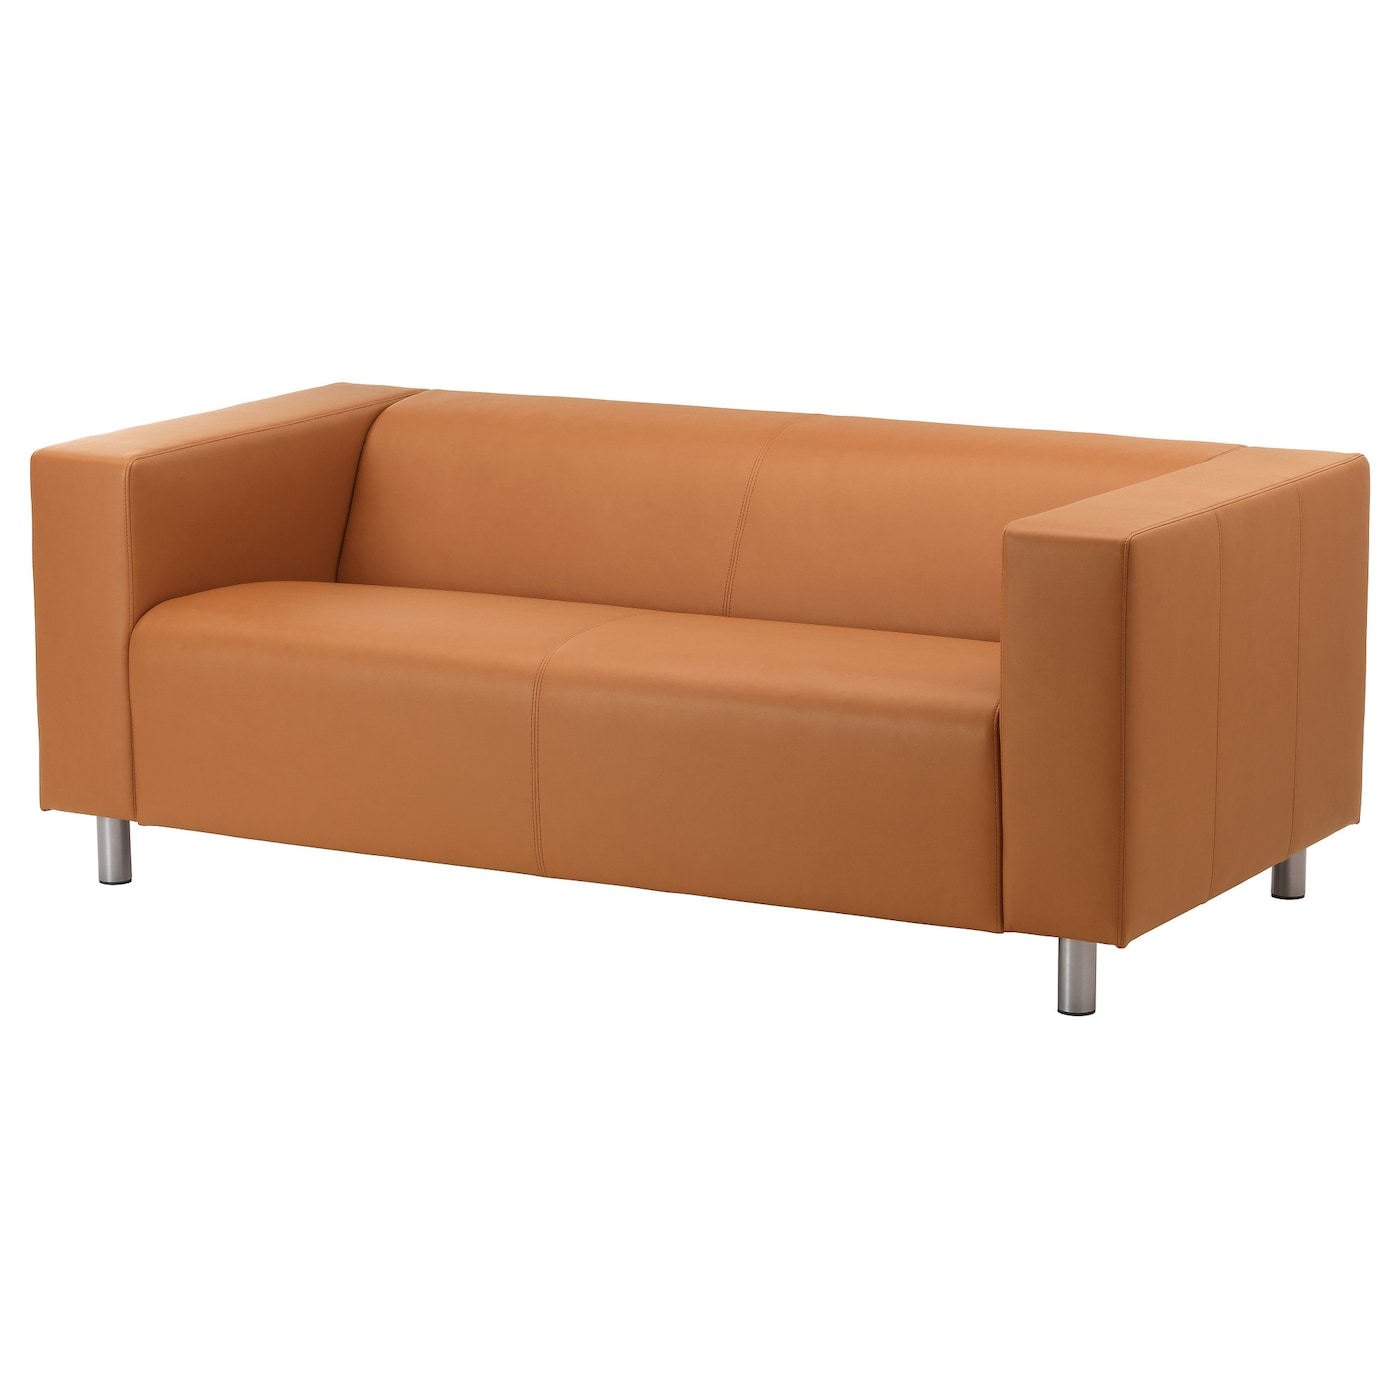 Klippan two seat sofa kimstad light brown ikea - Klippan sofa ikea ...